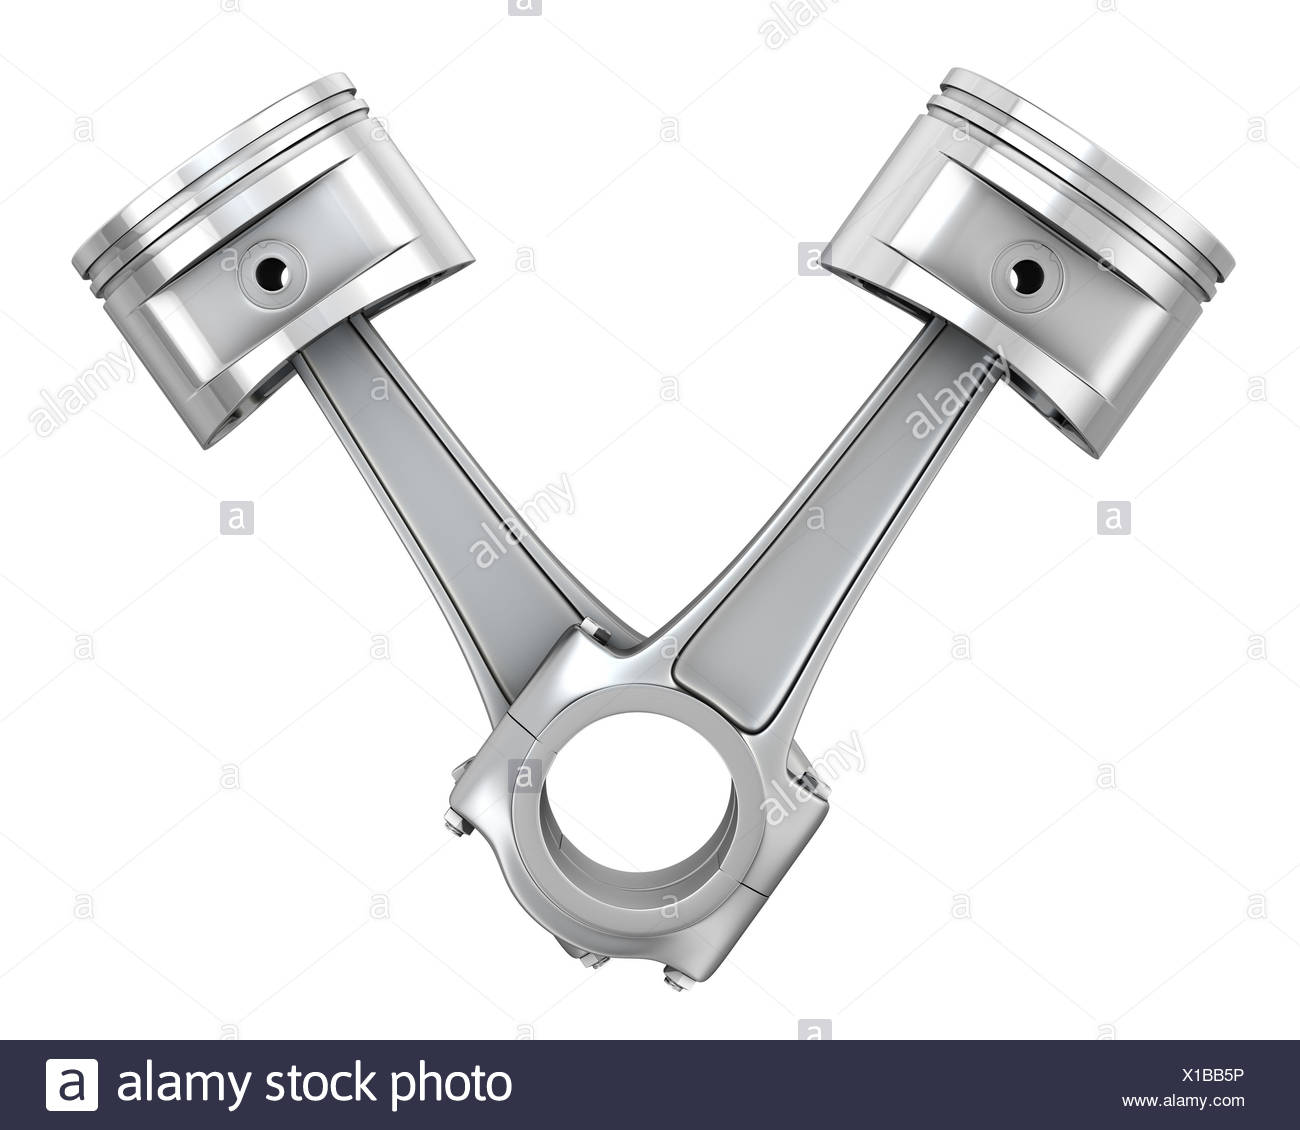 Two engine pistons - Stock Image